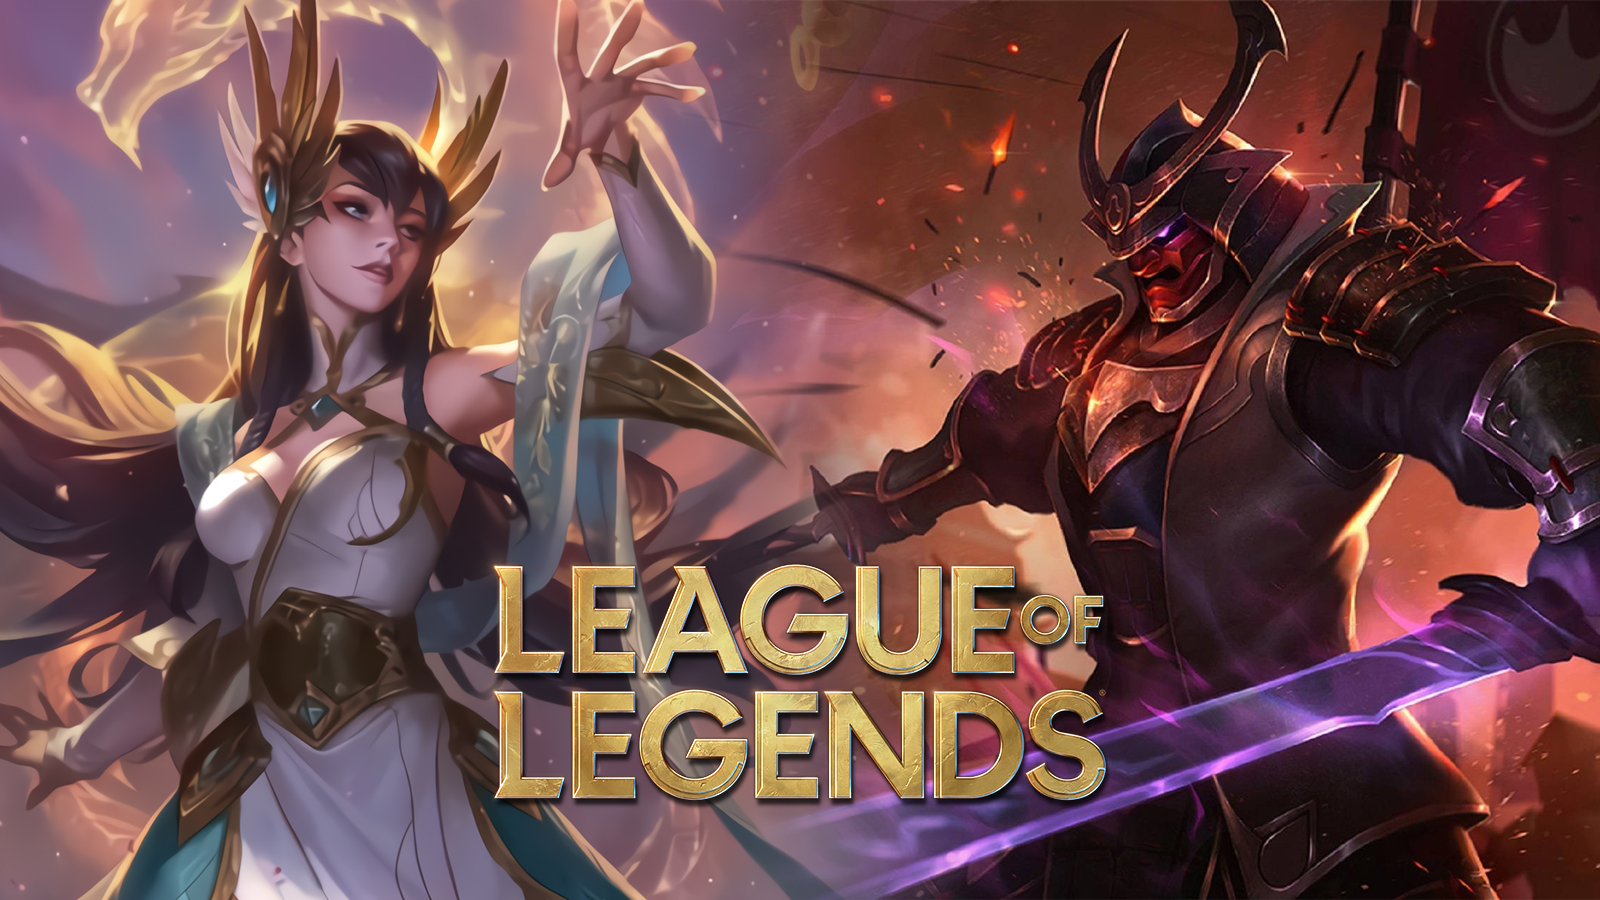 Divine Sword Irelia and Warlord Shen in League of Legends